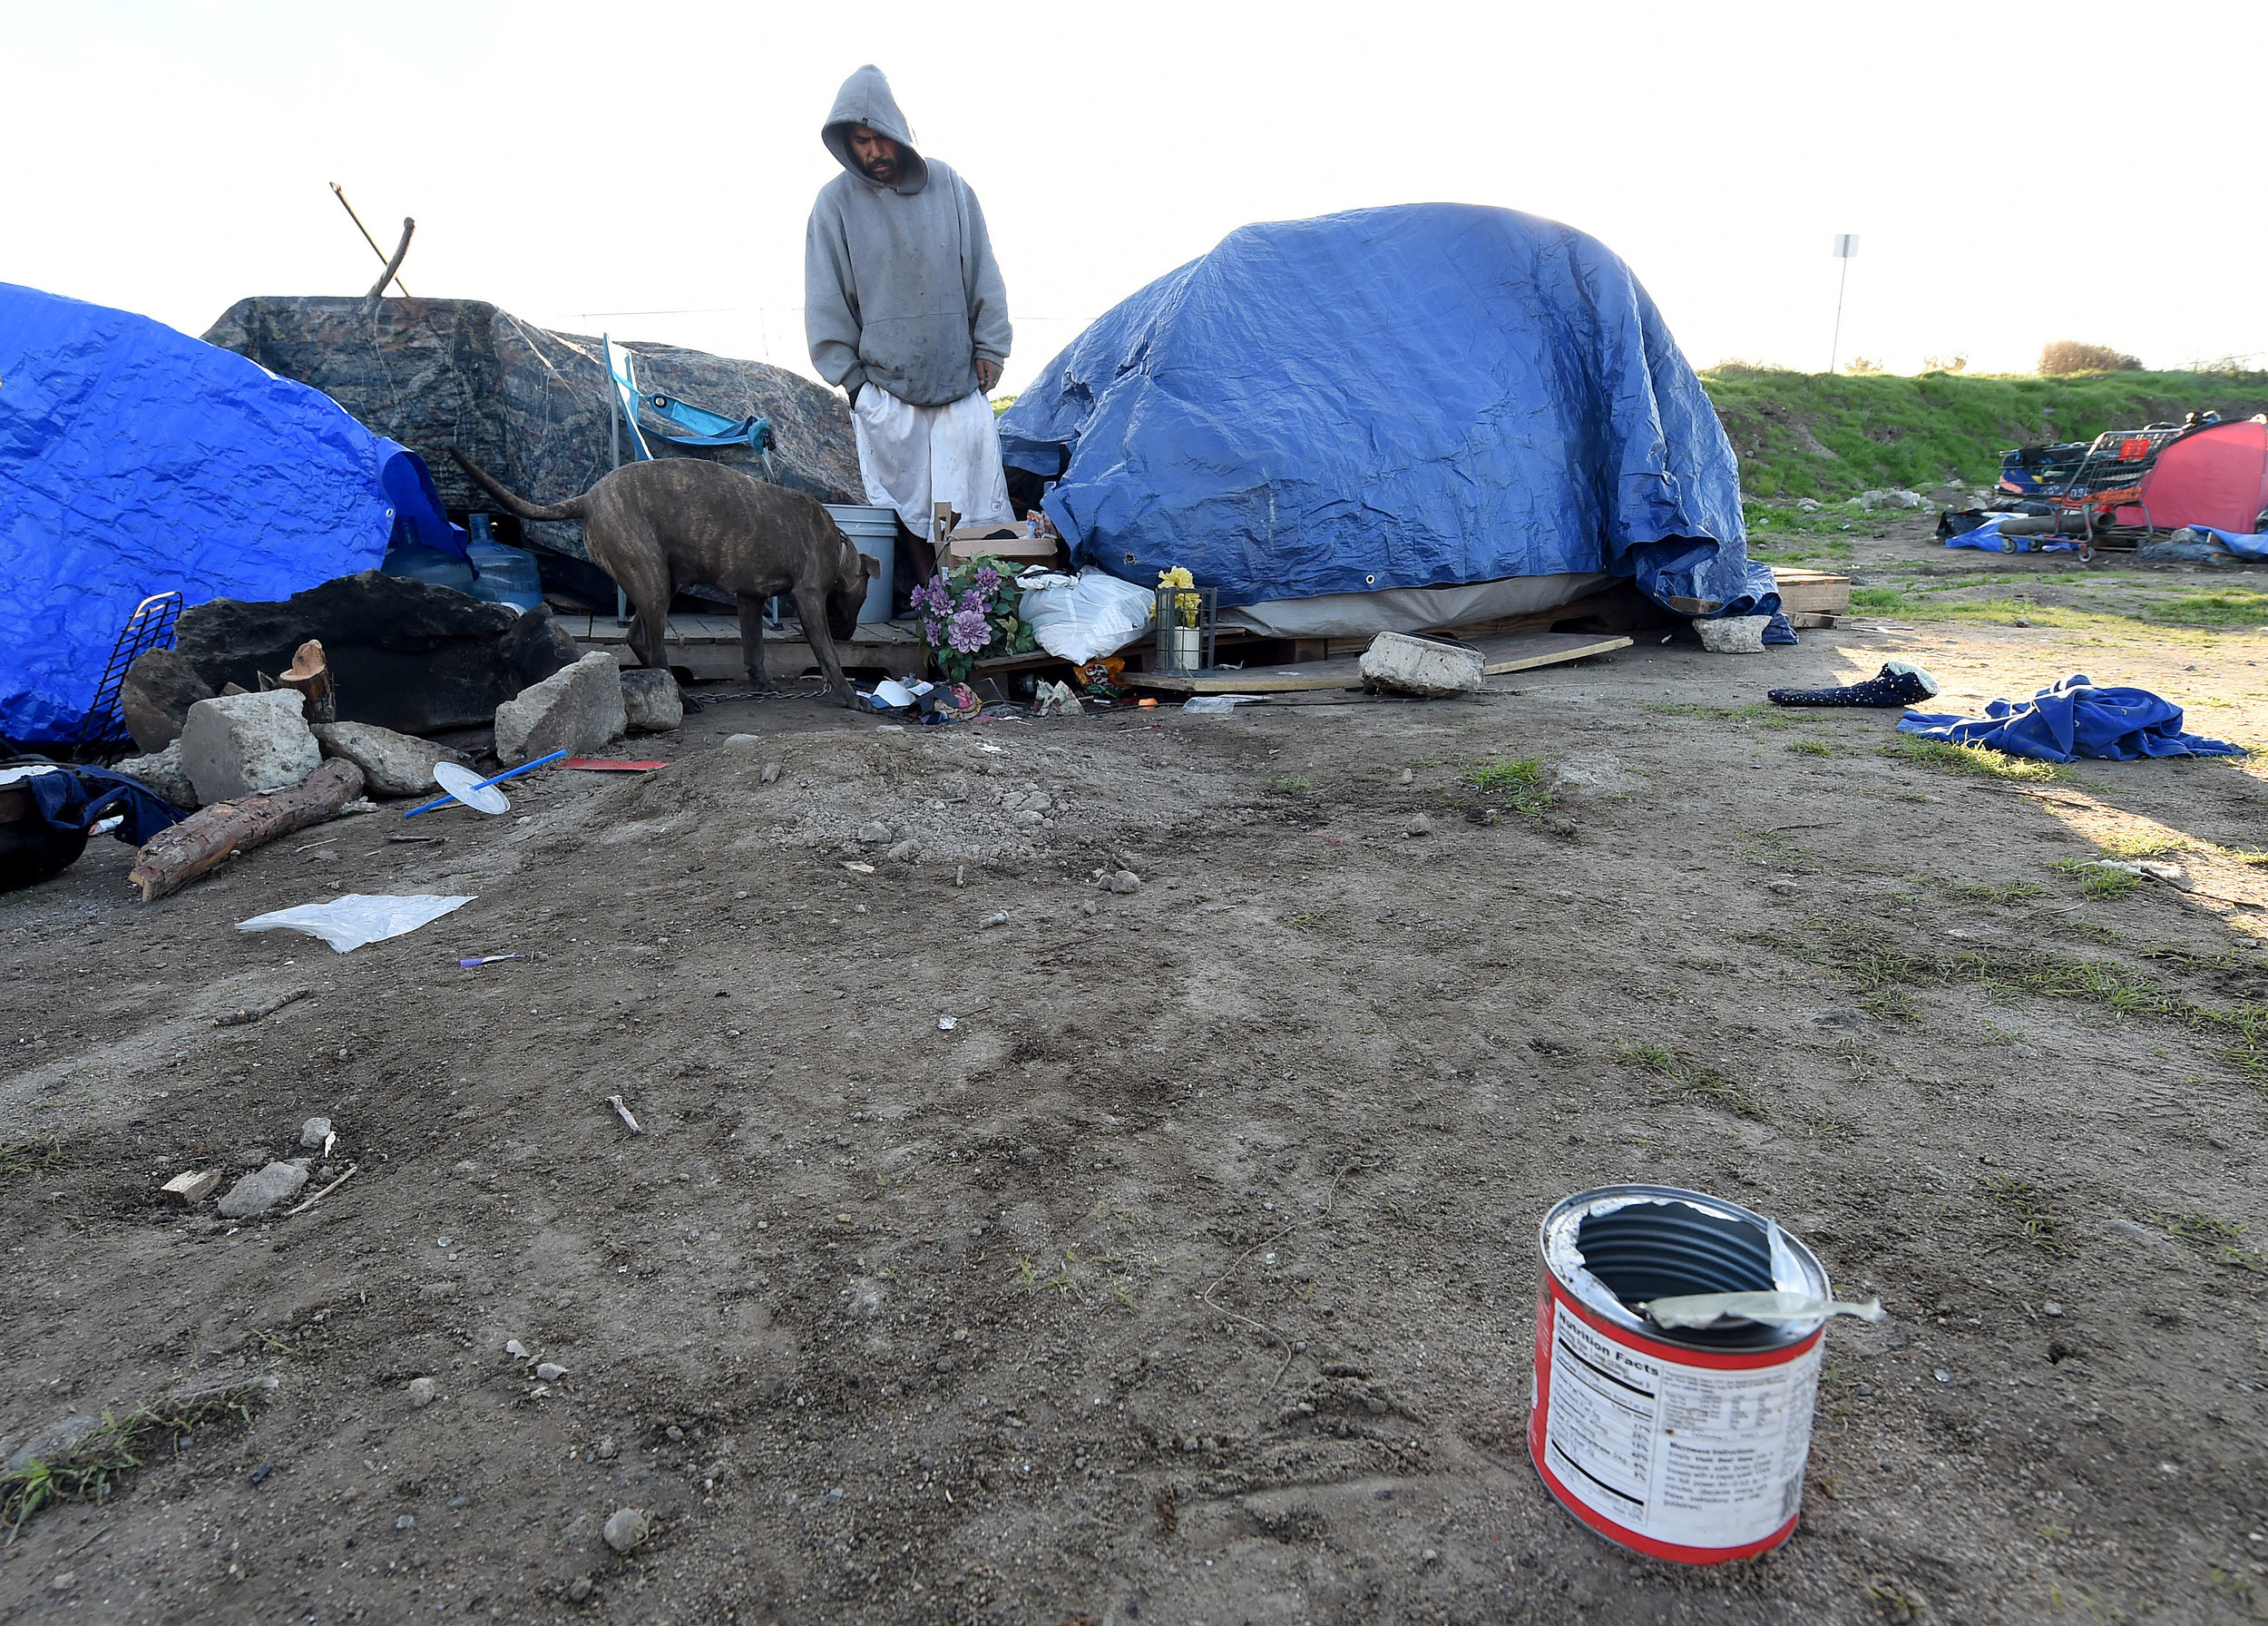 A homeless man stands outside his tent, along with his dog, in a homeless camp off of 9th Street in San Bernardino during the San Bernardino County 2019 Point-in-Time Homeless Count in downtown San Bernardino Thursday morning, January 24, 2019. The Point-in-Time Homeless Count (PITC) is a one-day street-based and service-based count and subpopulation survey of sheltered and unsheltered individuals to identify how many people in San Bernardino County are homeless and their subpopulation characteristics on a given day. Information was also given out to help those who wished to improve their situation.